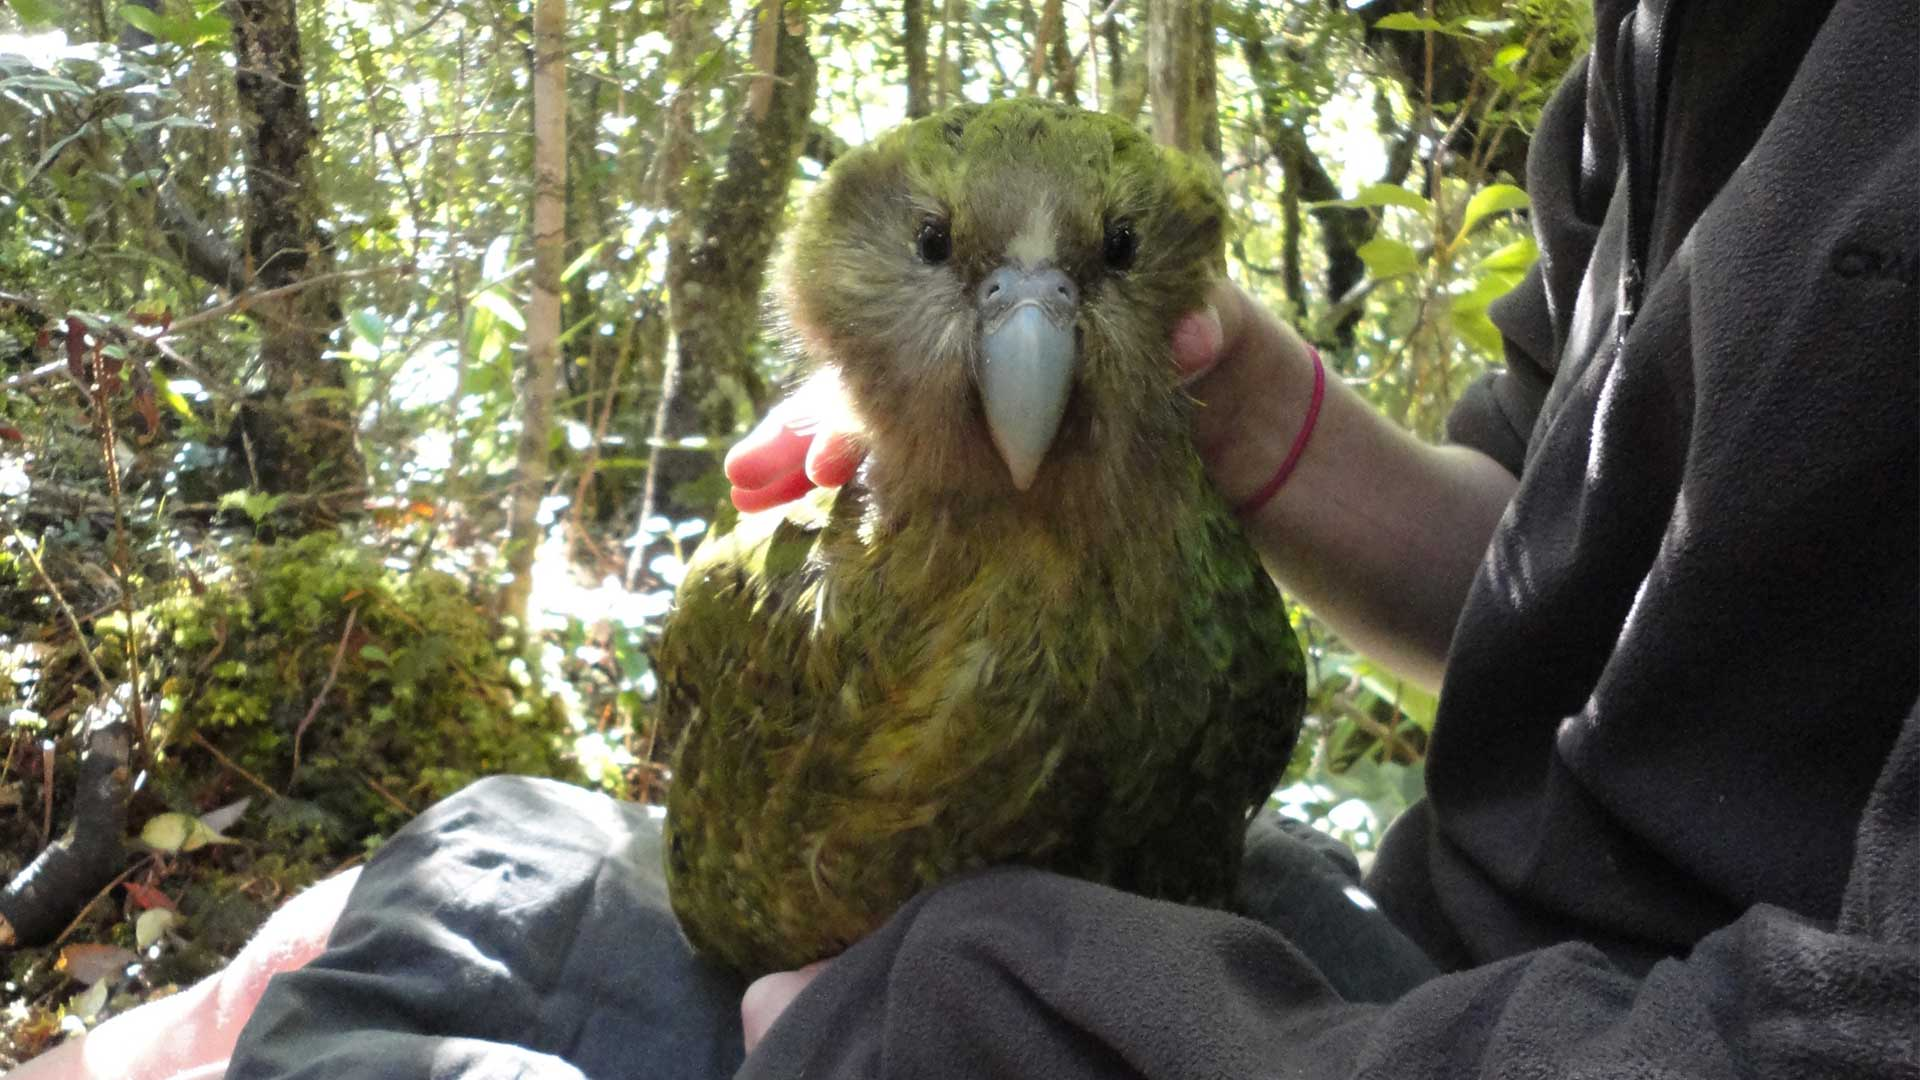 https://rfacdn.nz/zoo/assets/media/kakapo-recovery-gallery-2.jpg